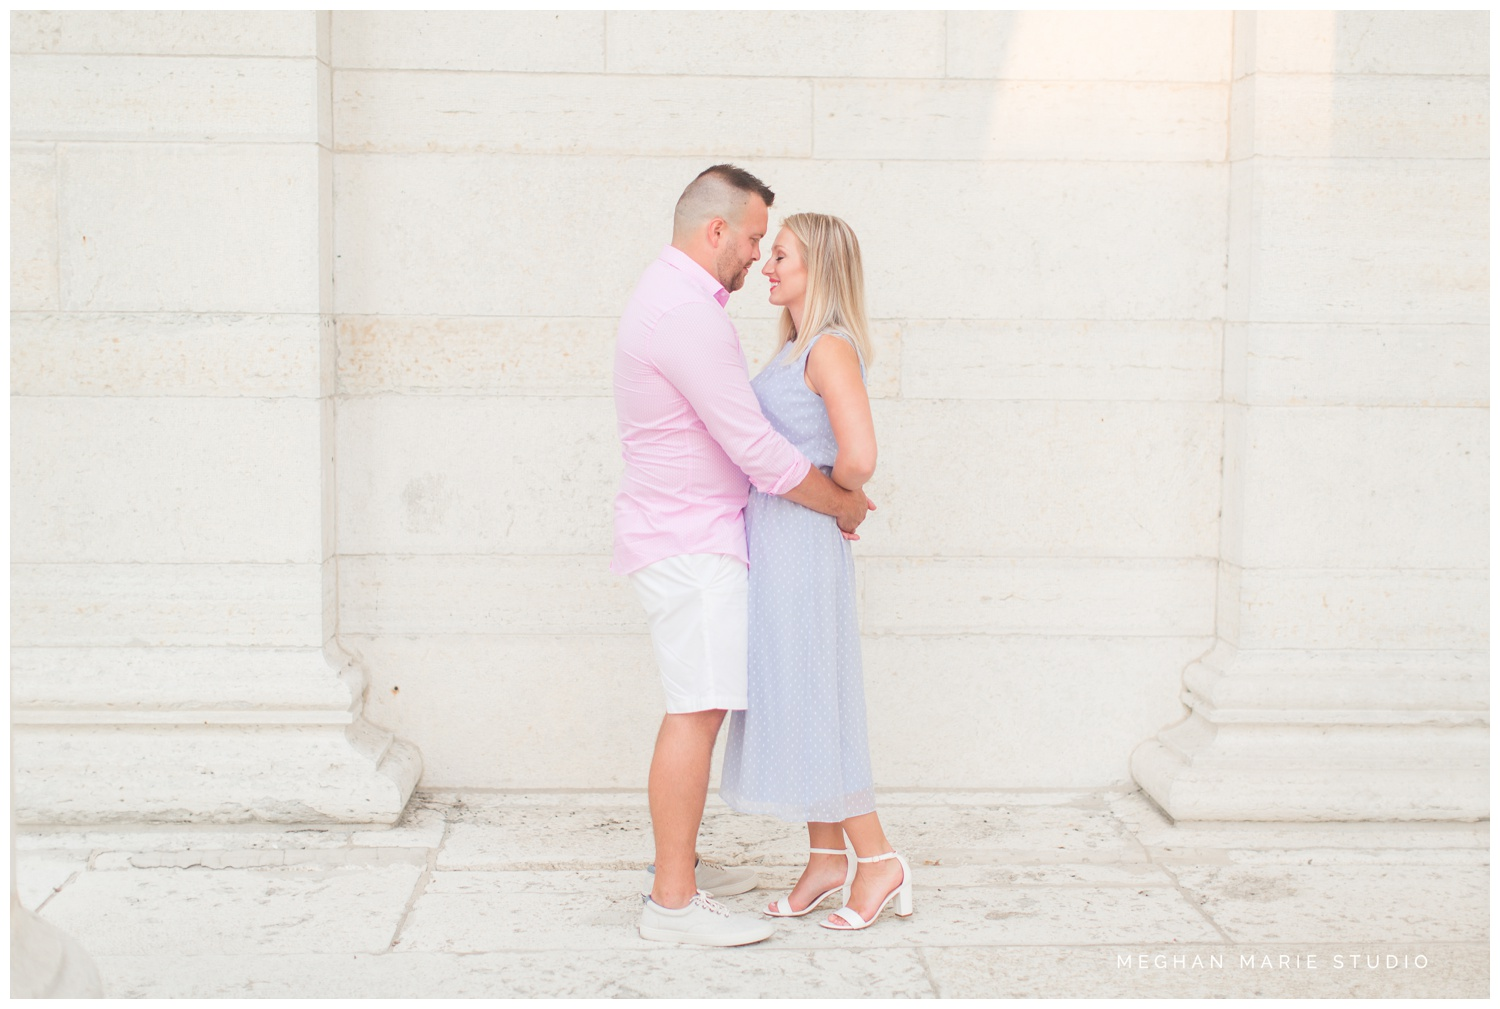 meghan marie studio ohio dayton troy photographer wedding photography engagement alex kaila family honeycreek preserve champagne downtown courthouse urban rural earth toned nature woods barn country city stone fountain elegant_0457.jpg